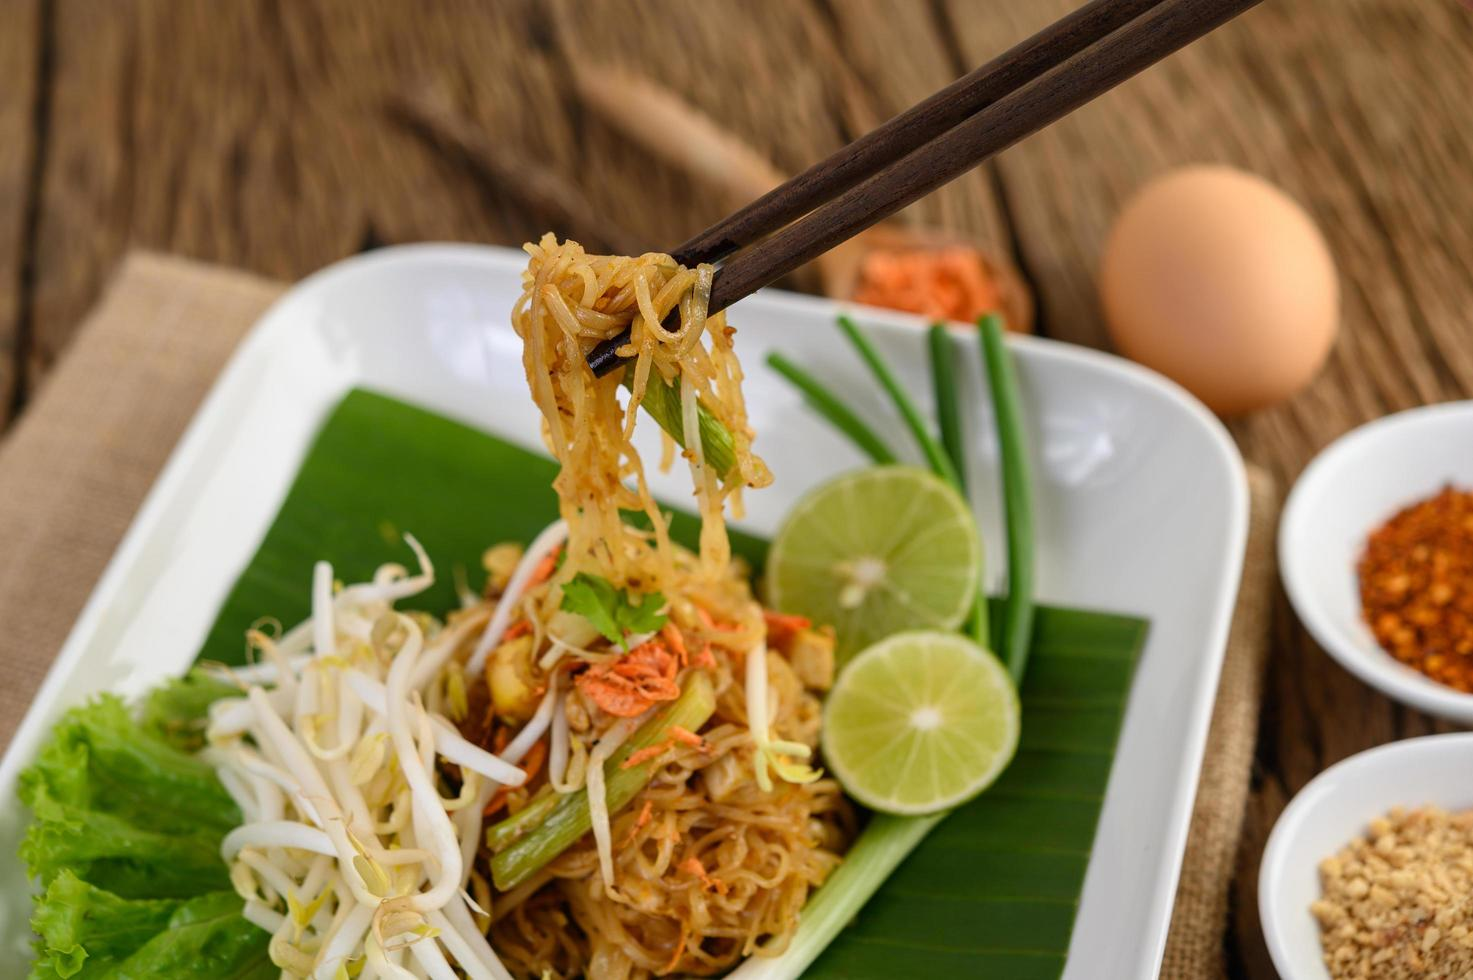 Pad Thai with lemon, eggs and seasoning on a wooden table photo